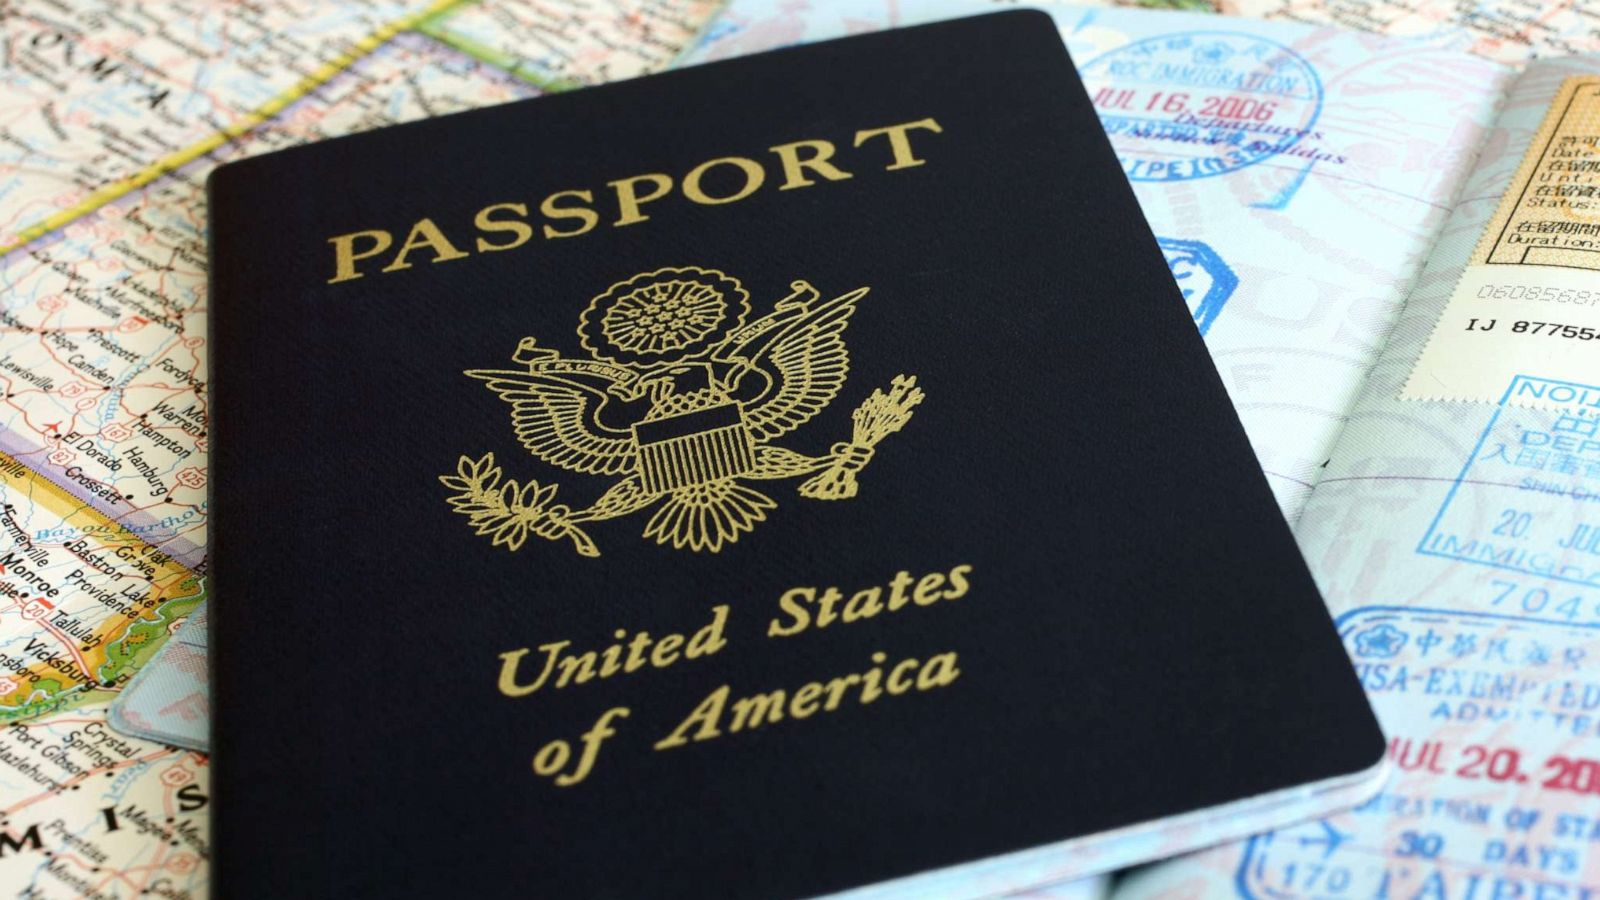 US could add 3rd gender option to passports under new legislation - ABC News